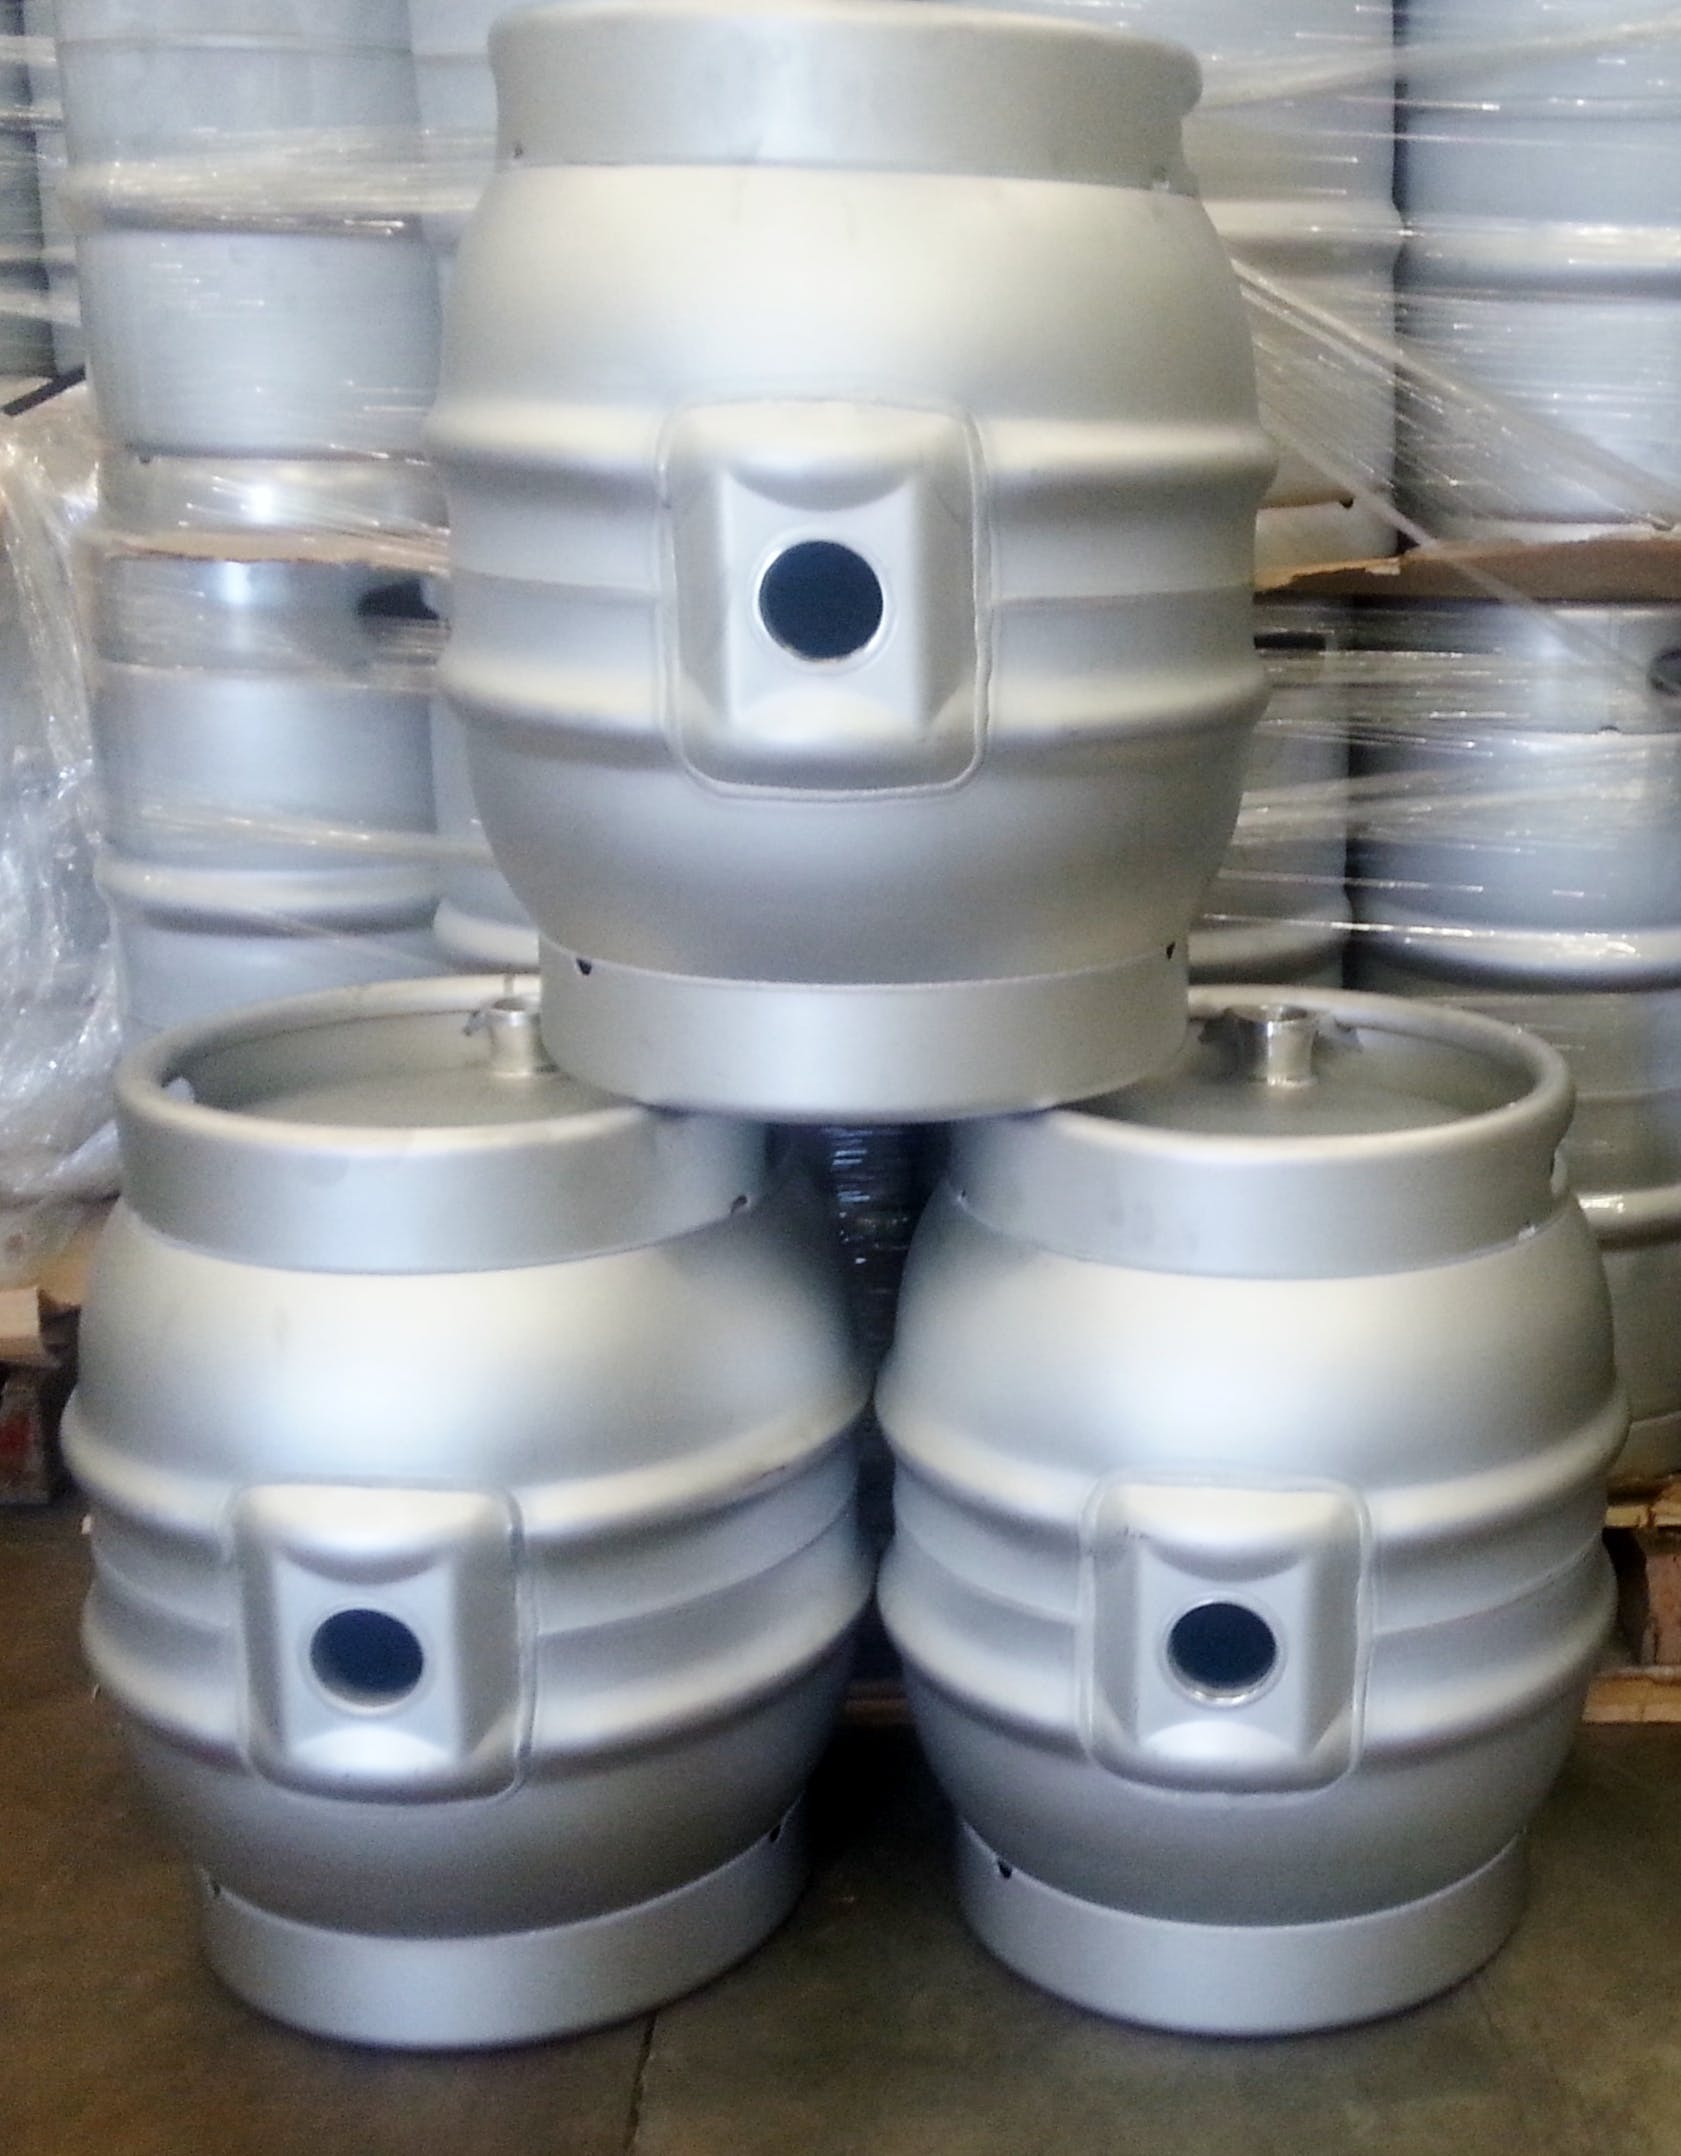 Firkin (9 Imperial Gal / 10.8 US Gal) Keg sold by Gopher Kegs